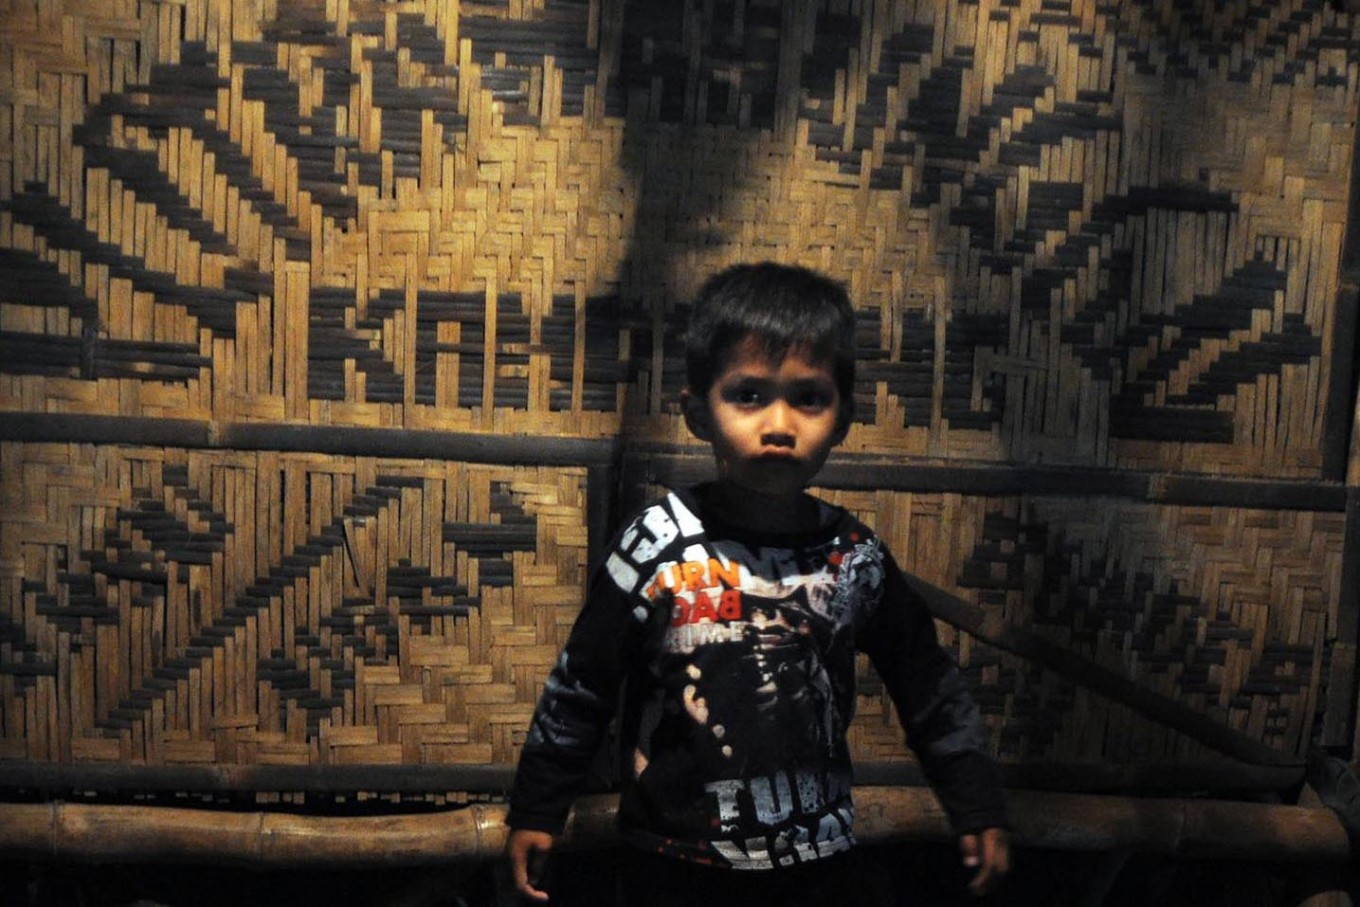 A boy watches the cultural performance with awe. JP/Magnus Hendratmo